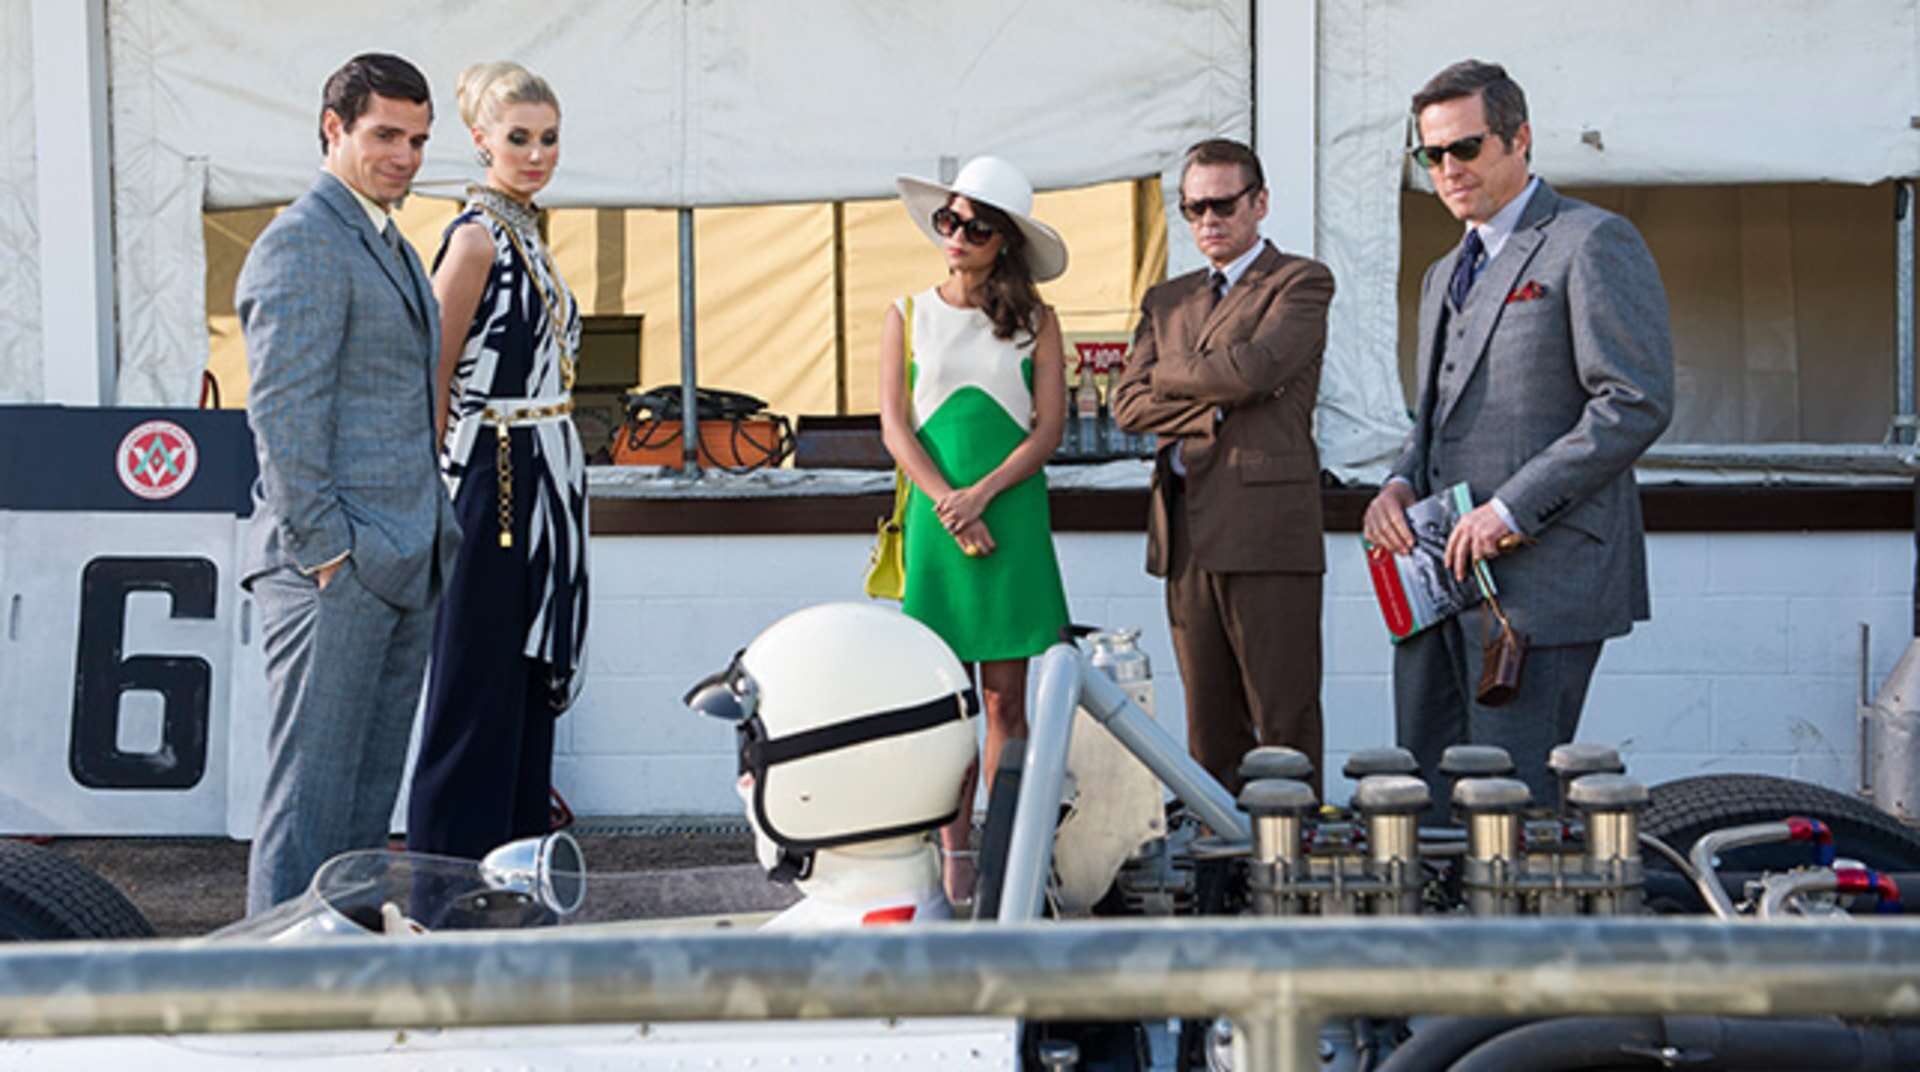 The Man From U.N.C.L.E. - Image 21